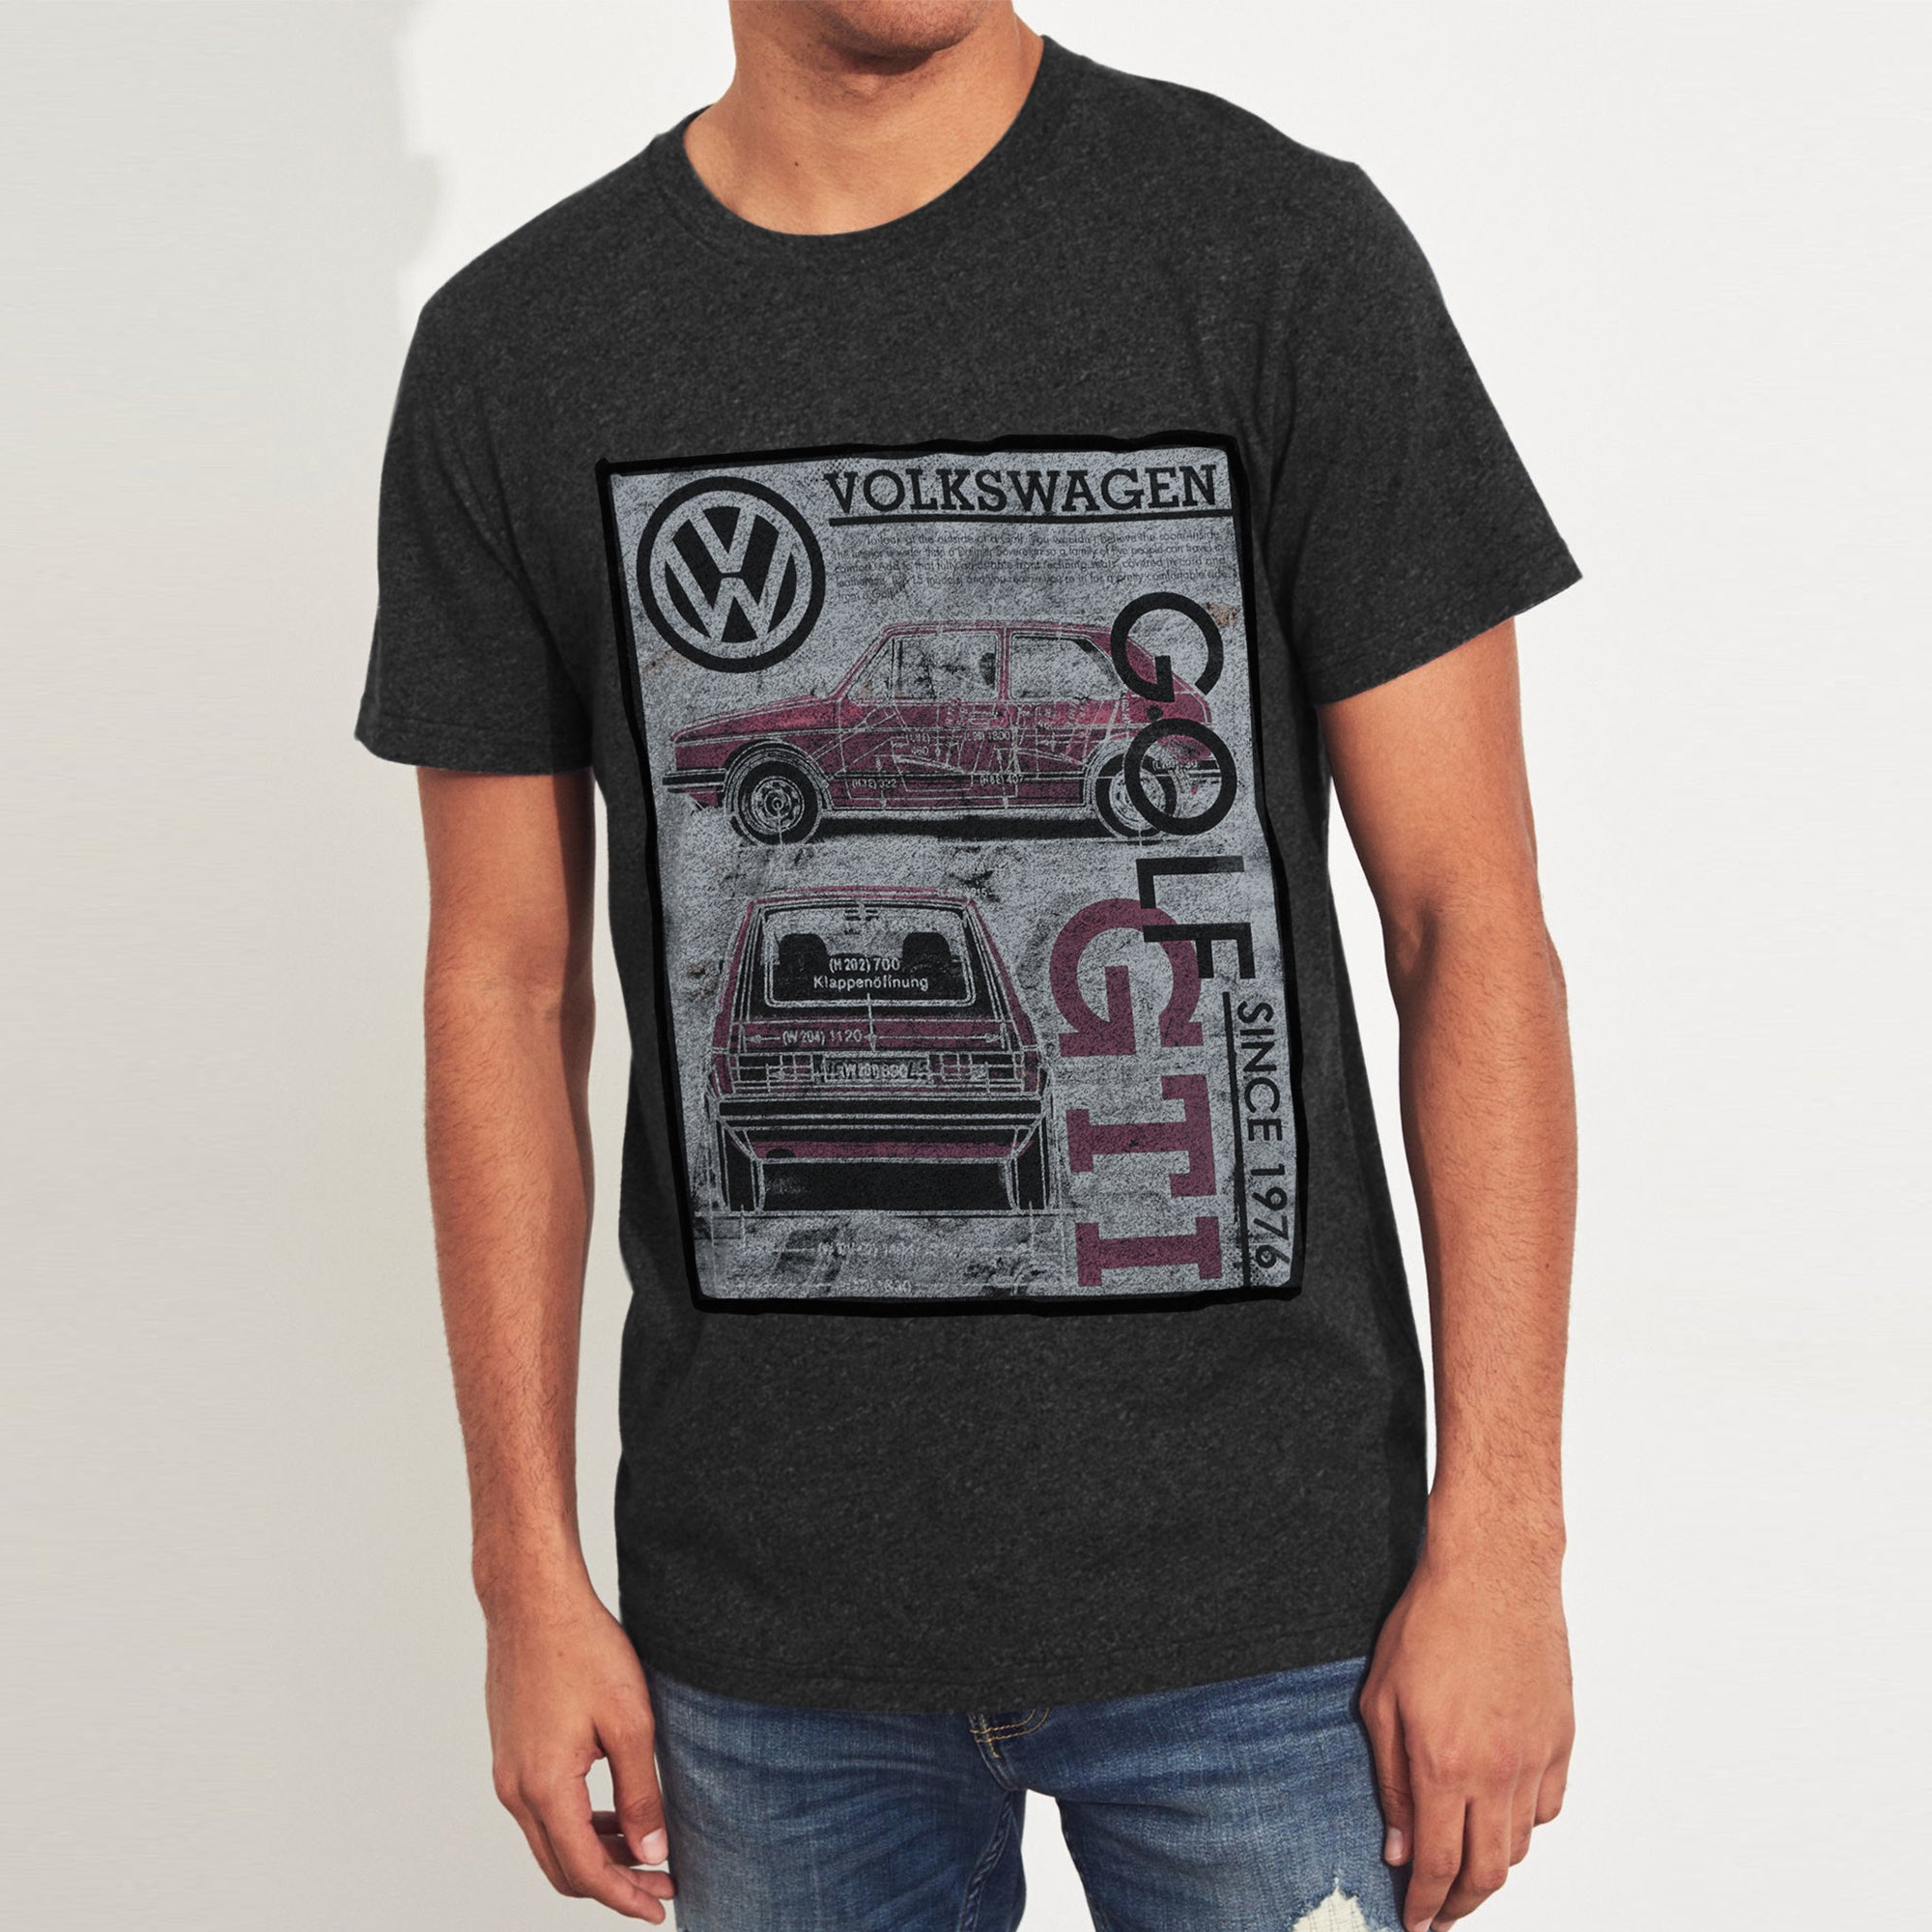 Volkswagen Crew Neck Single Jersey Tee Shirt For Men-Charcoal Melange-BE8341